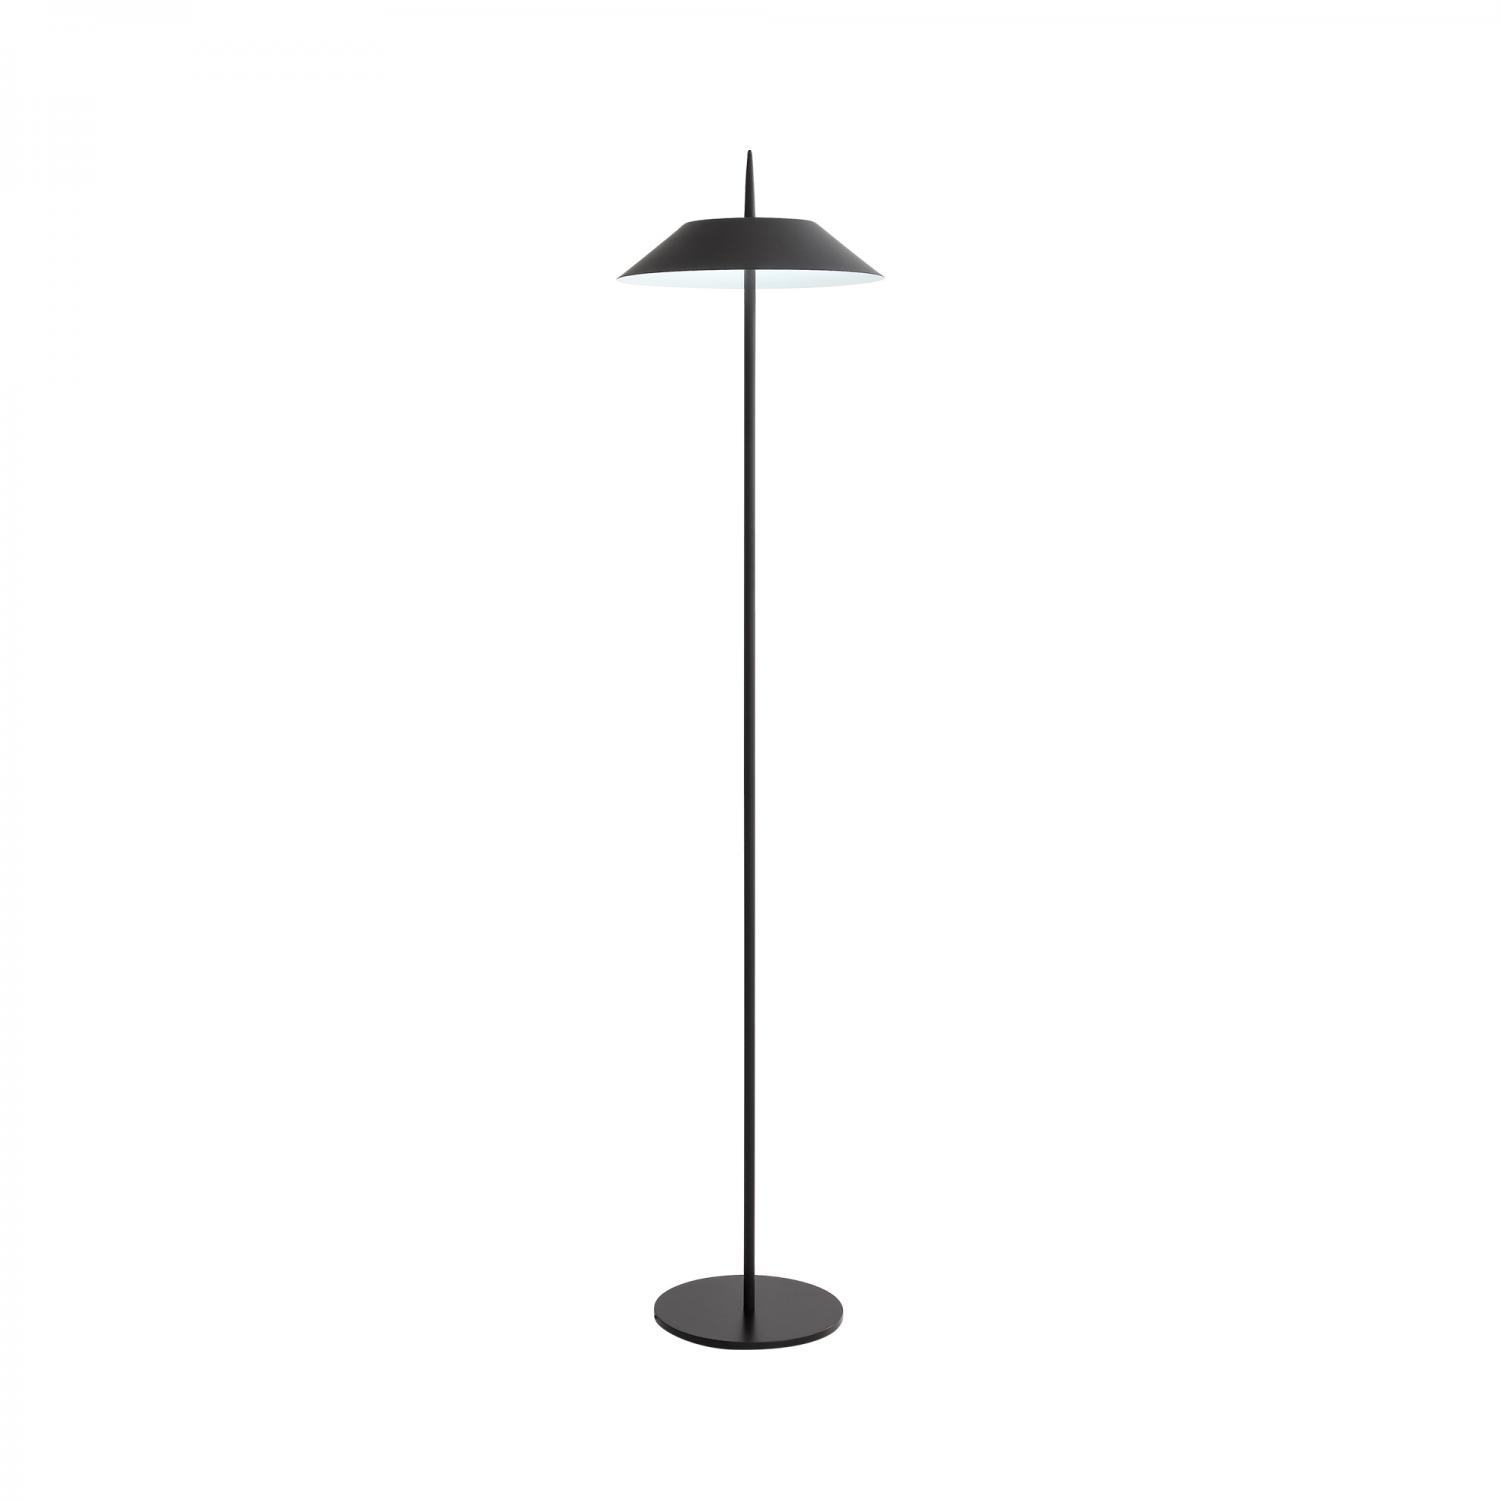 Vibia Mayfair Floor lamp Diego Fortunato